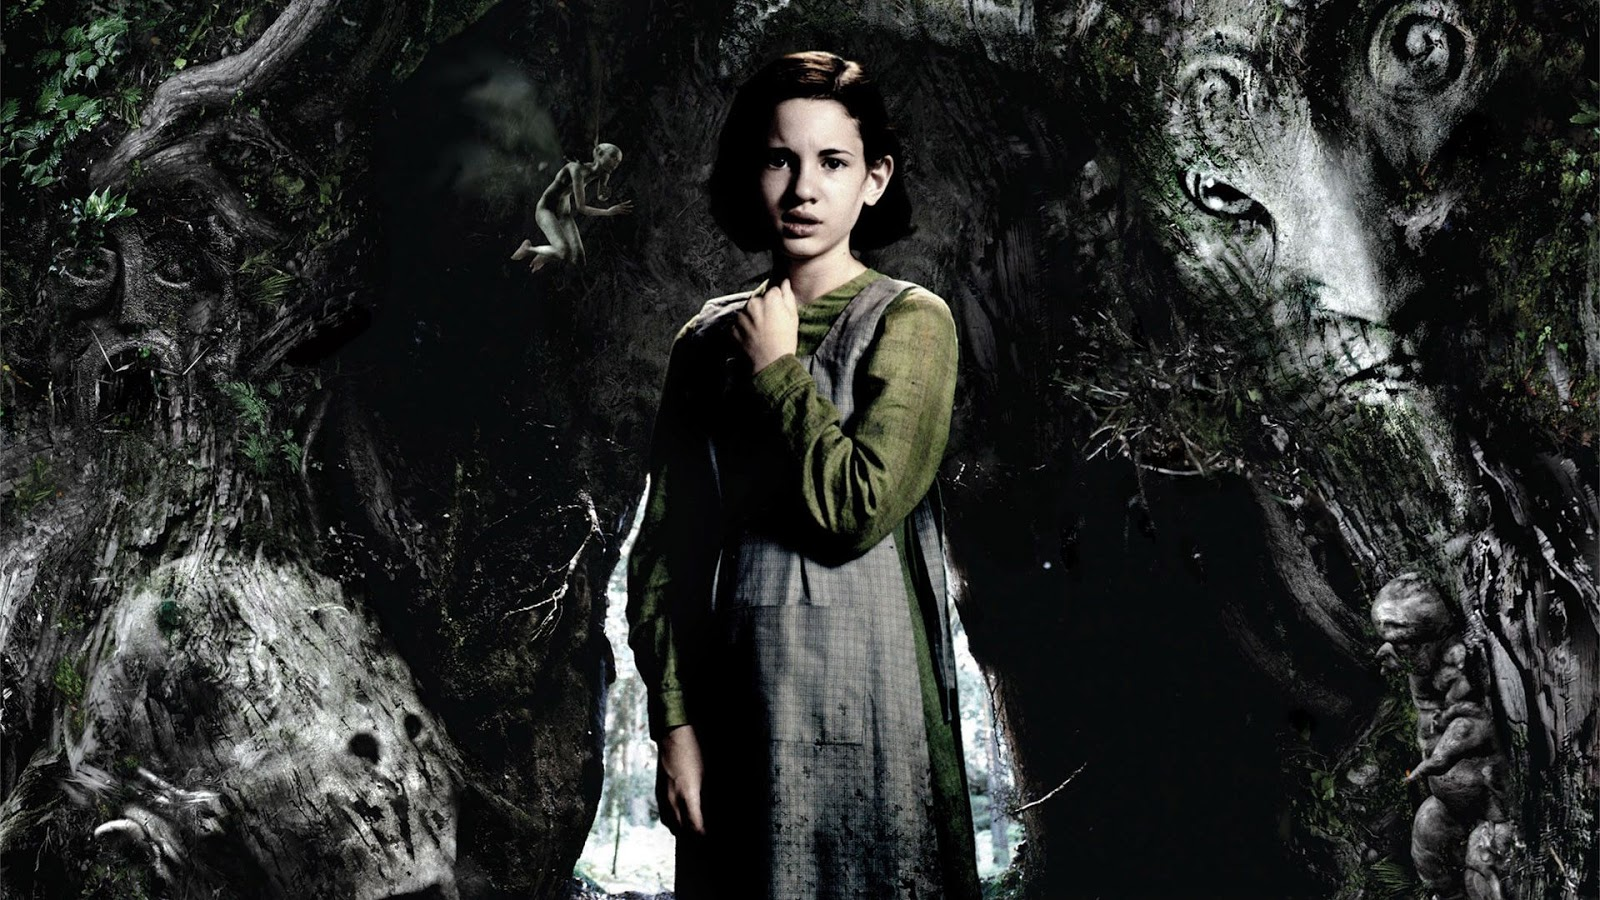 pans labyrinth essay Pan's labyrinth research assignment thesis proposal and research part ii due by 13:00, friday october 27 on blackboard these are to be submitted as the rev.